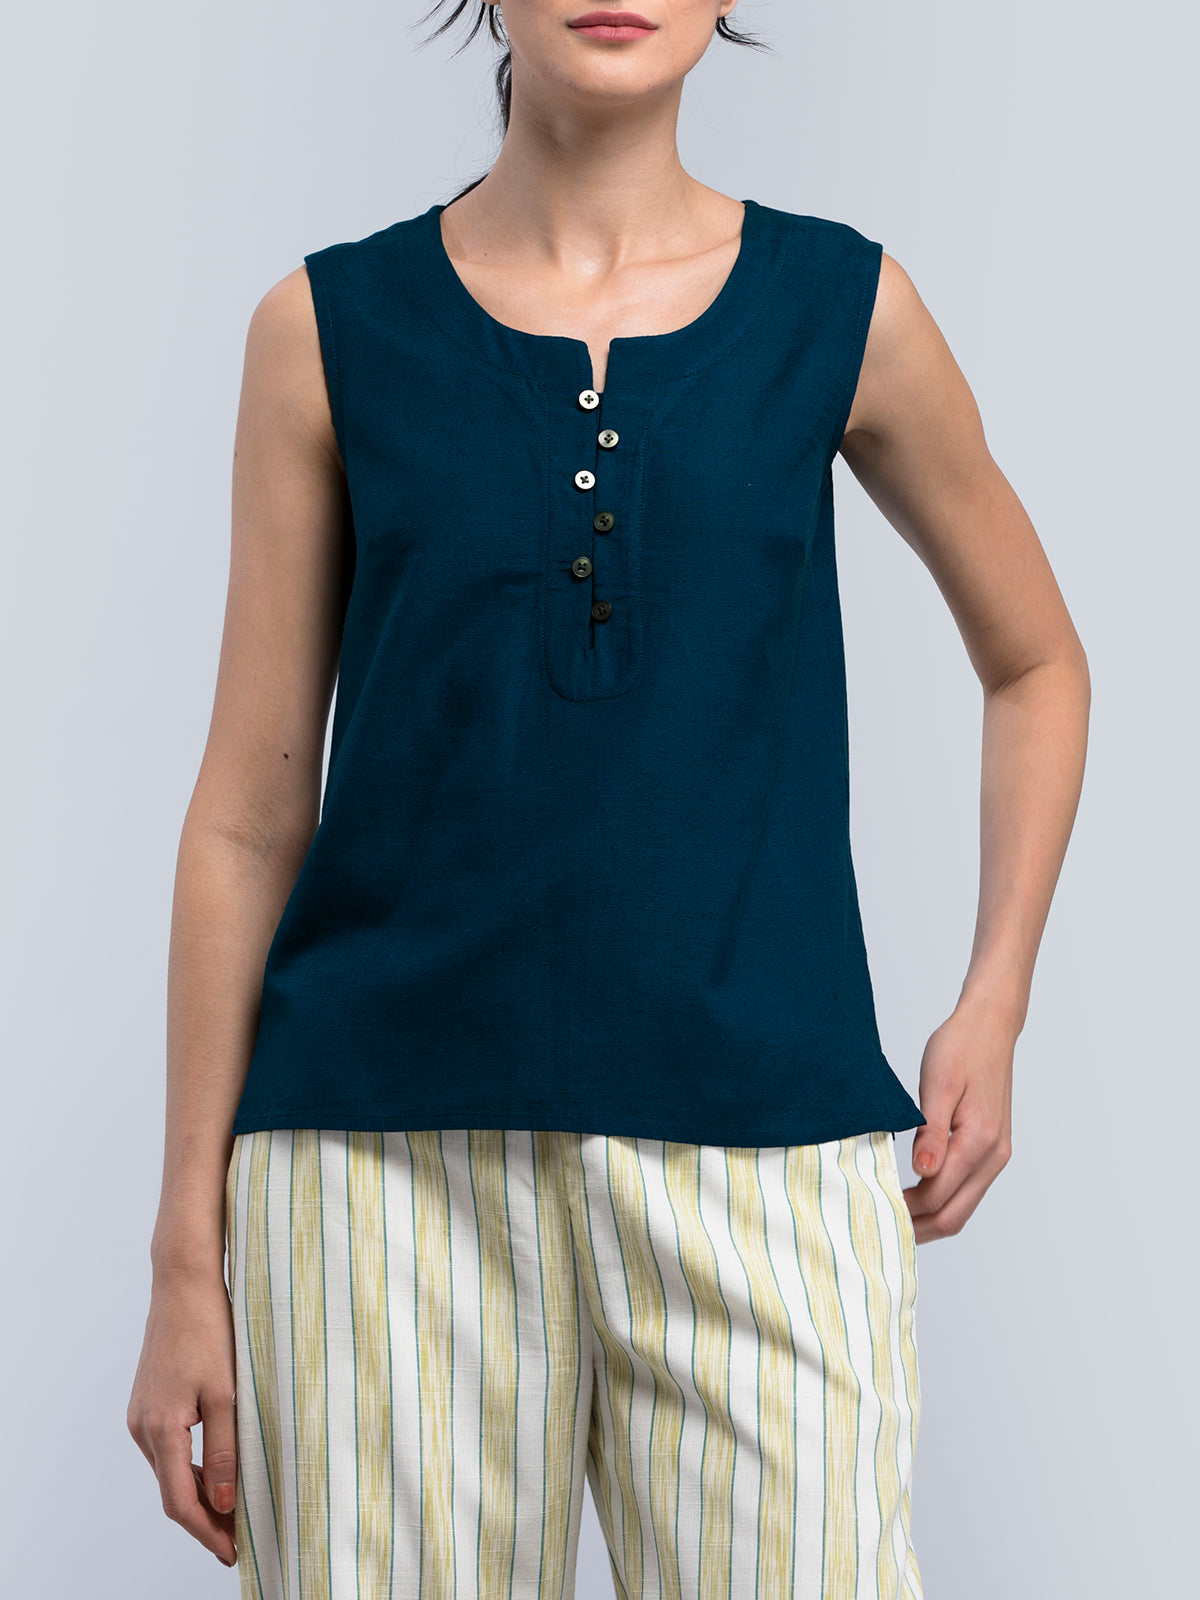 Cotton Button Detail Top - Spinel Teal